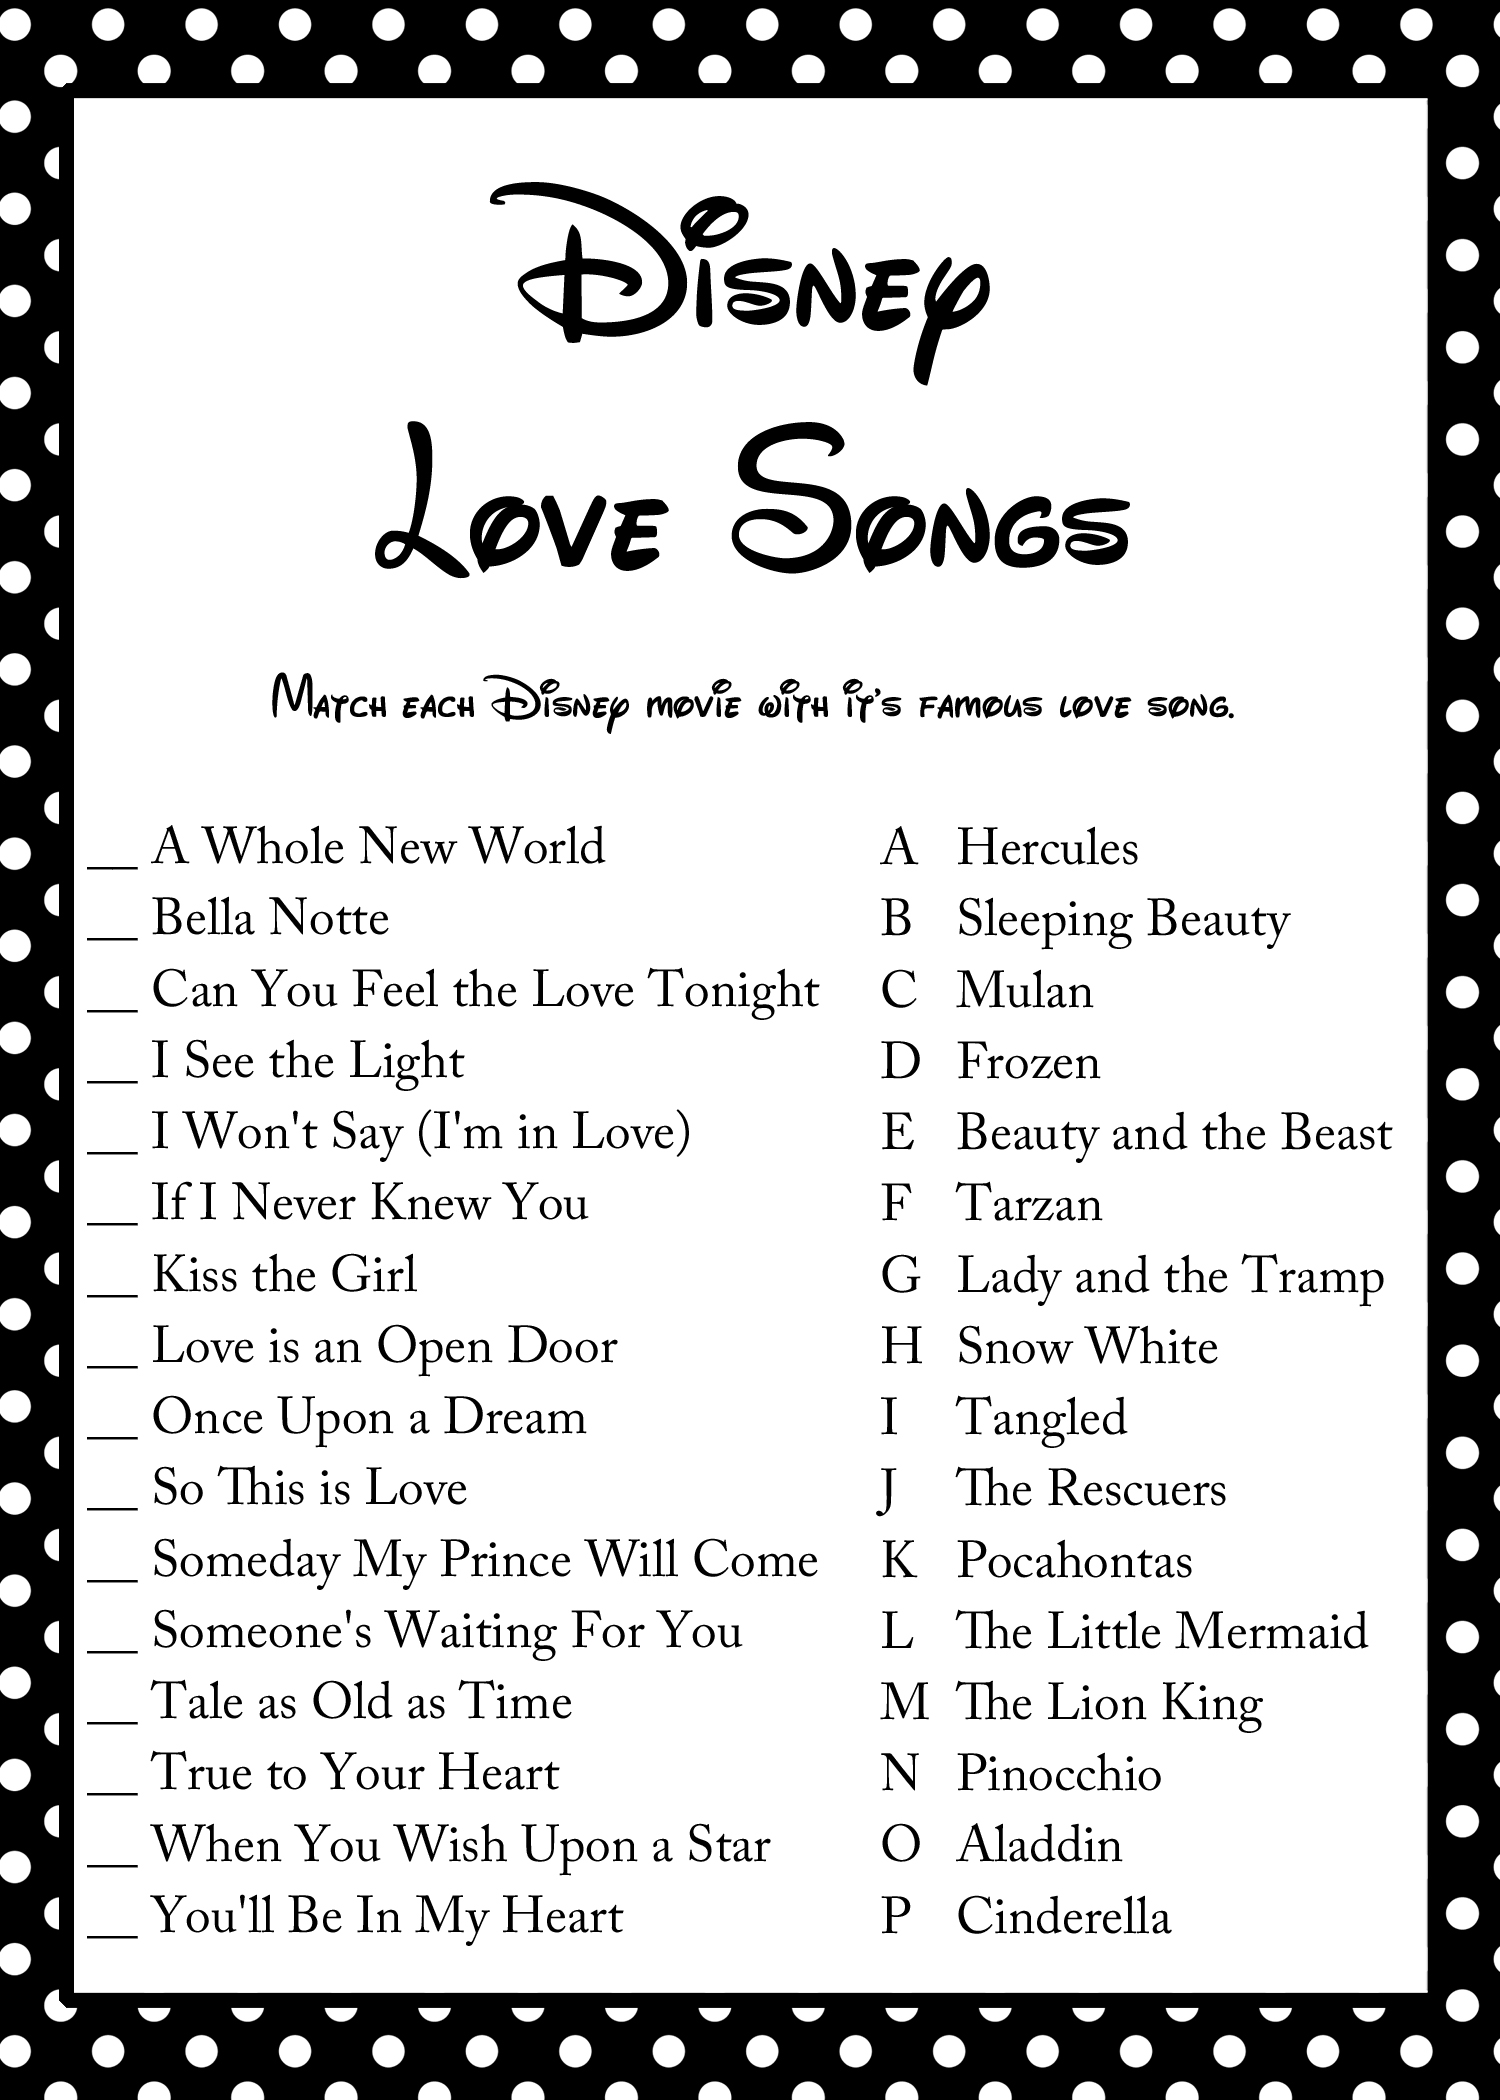 free-disney-love-song-game-black.jpg